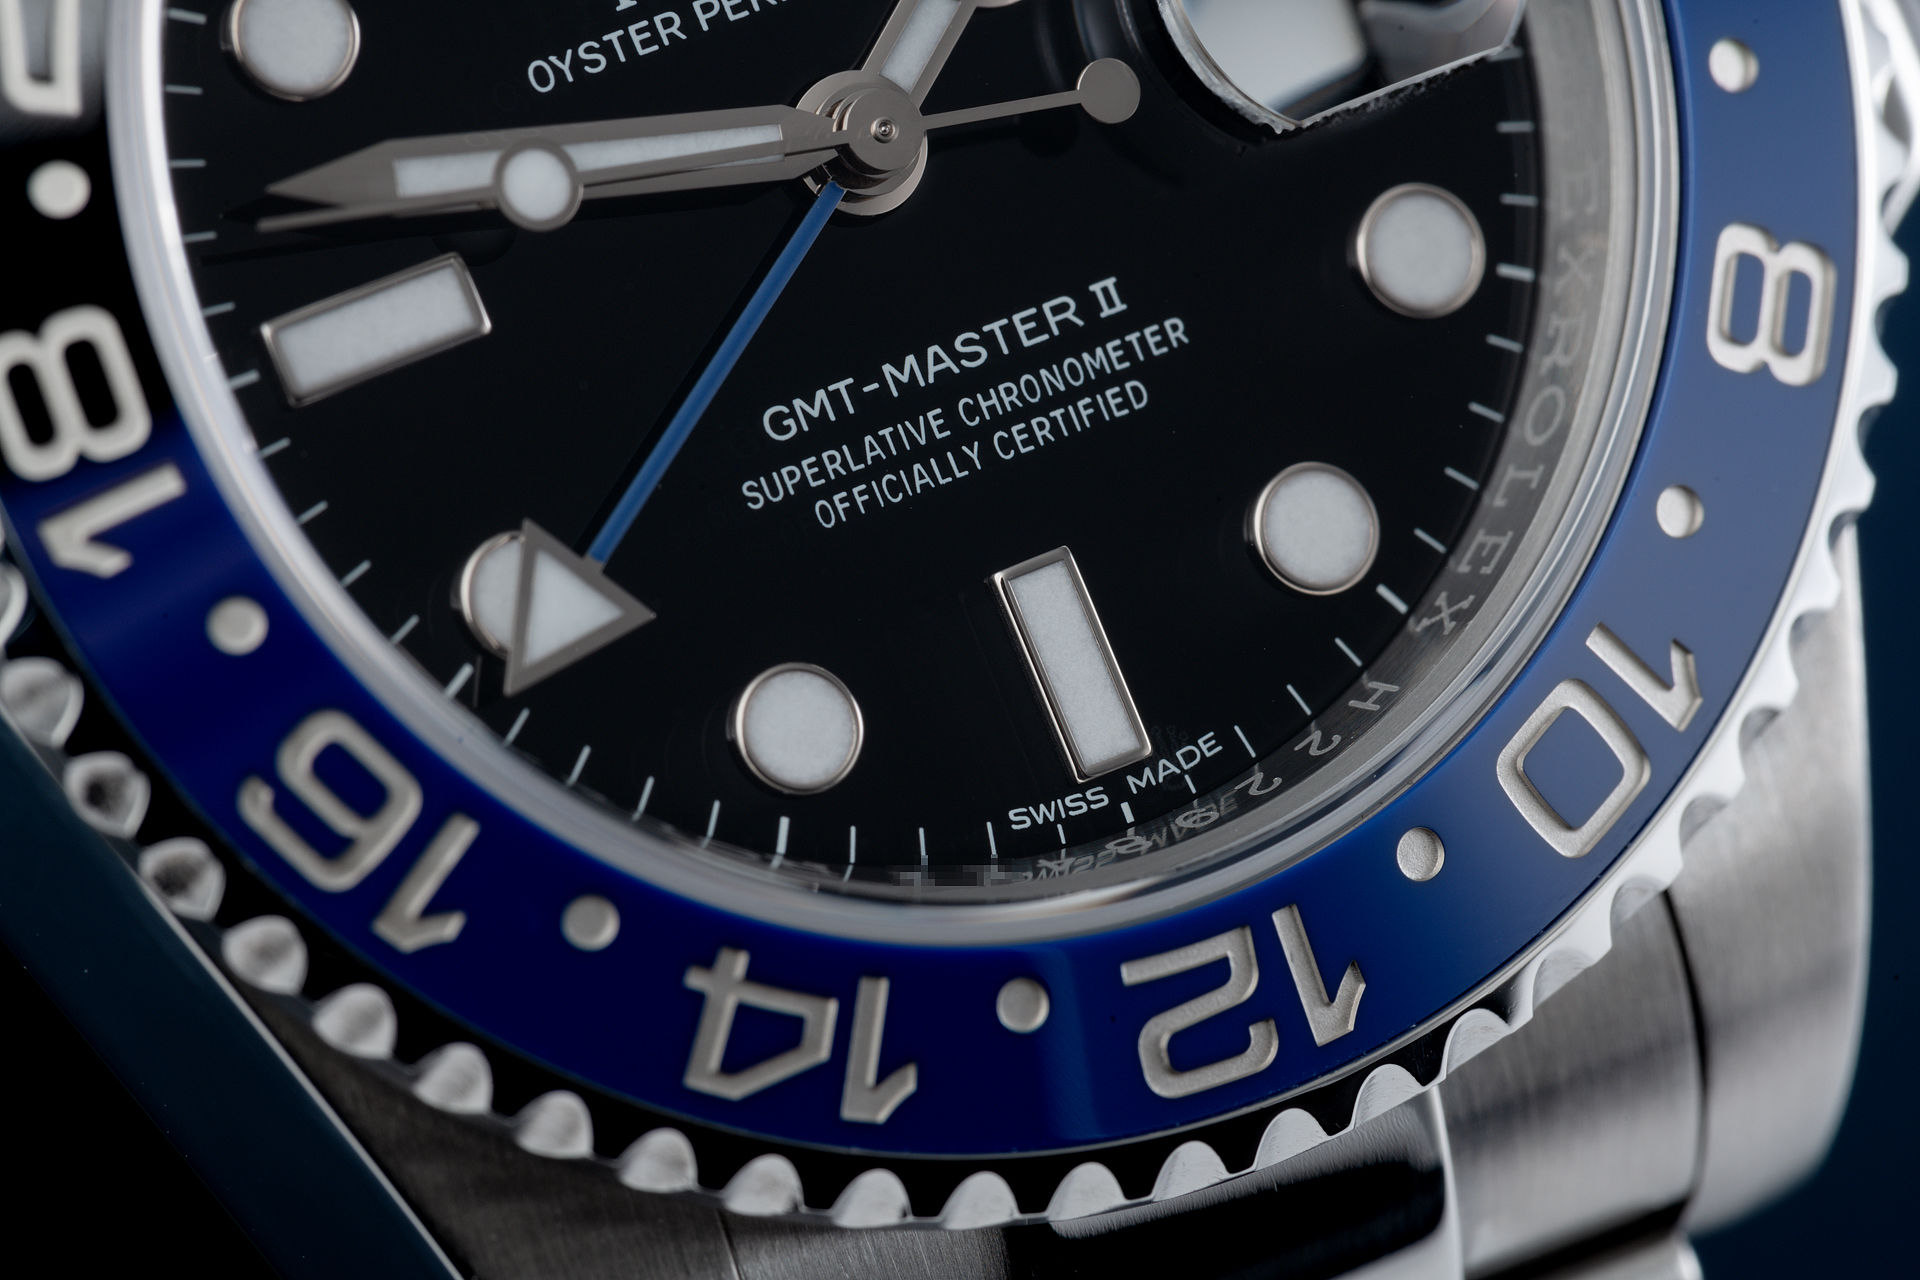 ref 116710BLNR | 'Under Rolex Warranty' | Rolex GMT-Master II